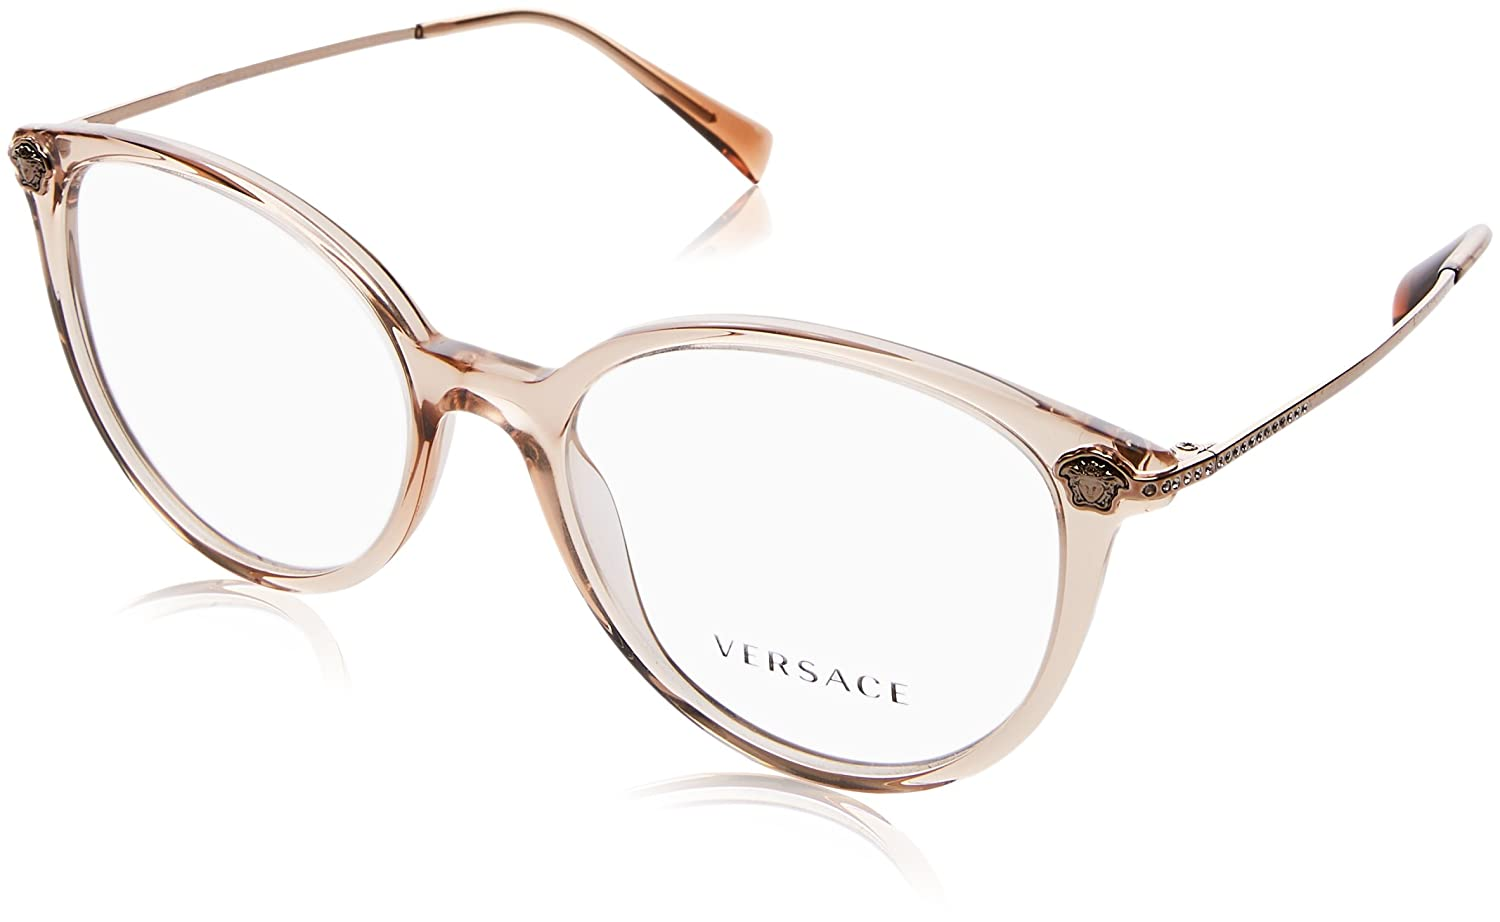 190965b90e Amazon.com  Eyeglasses Versace VE 3251 B GB1 BLACK  Clothing